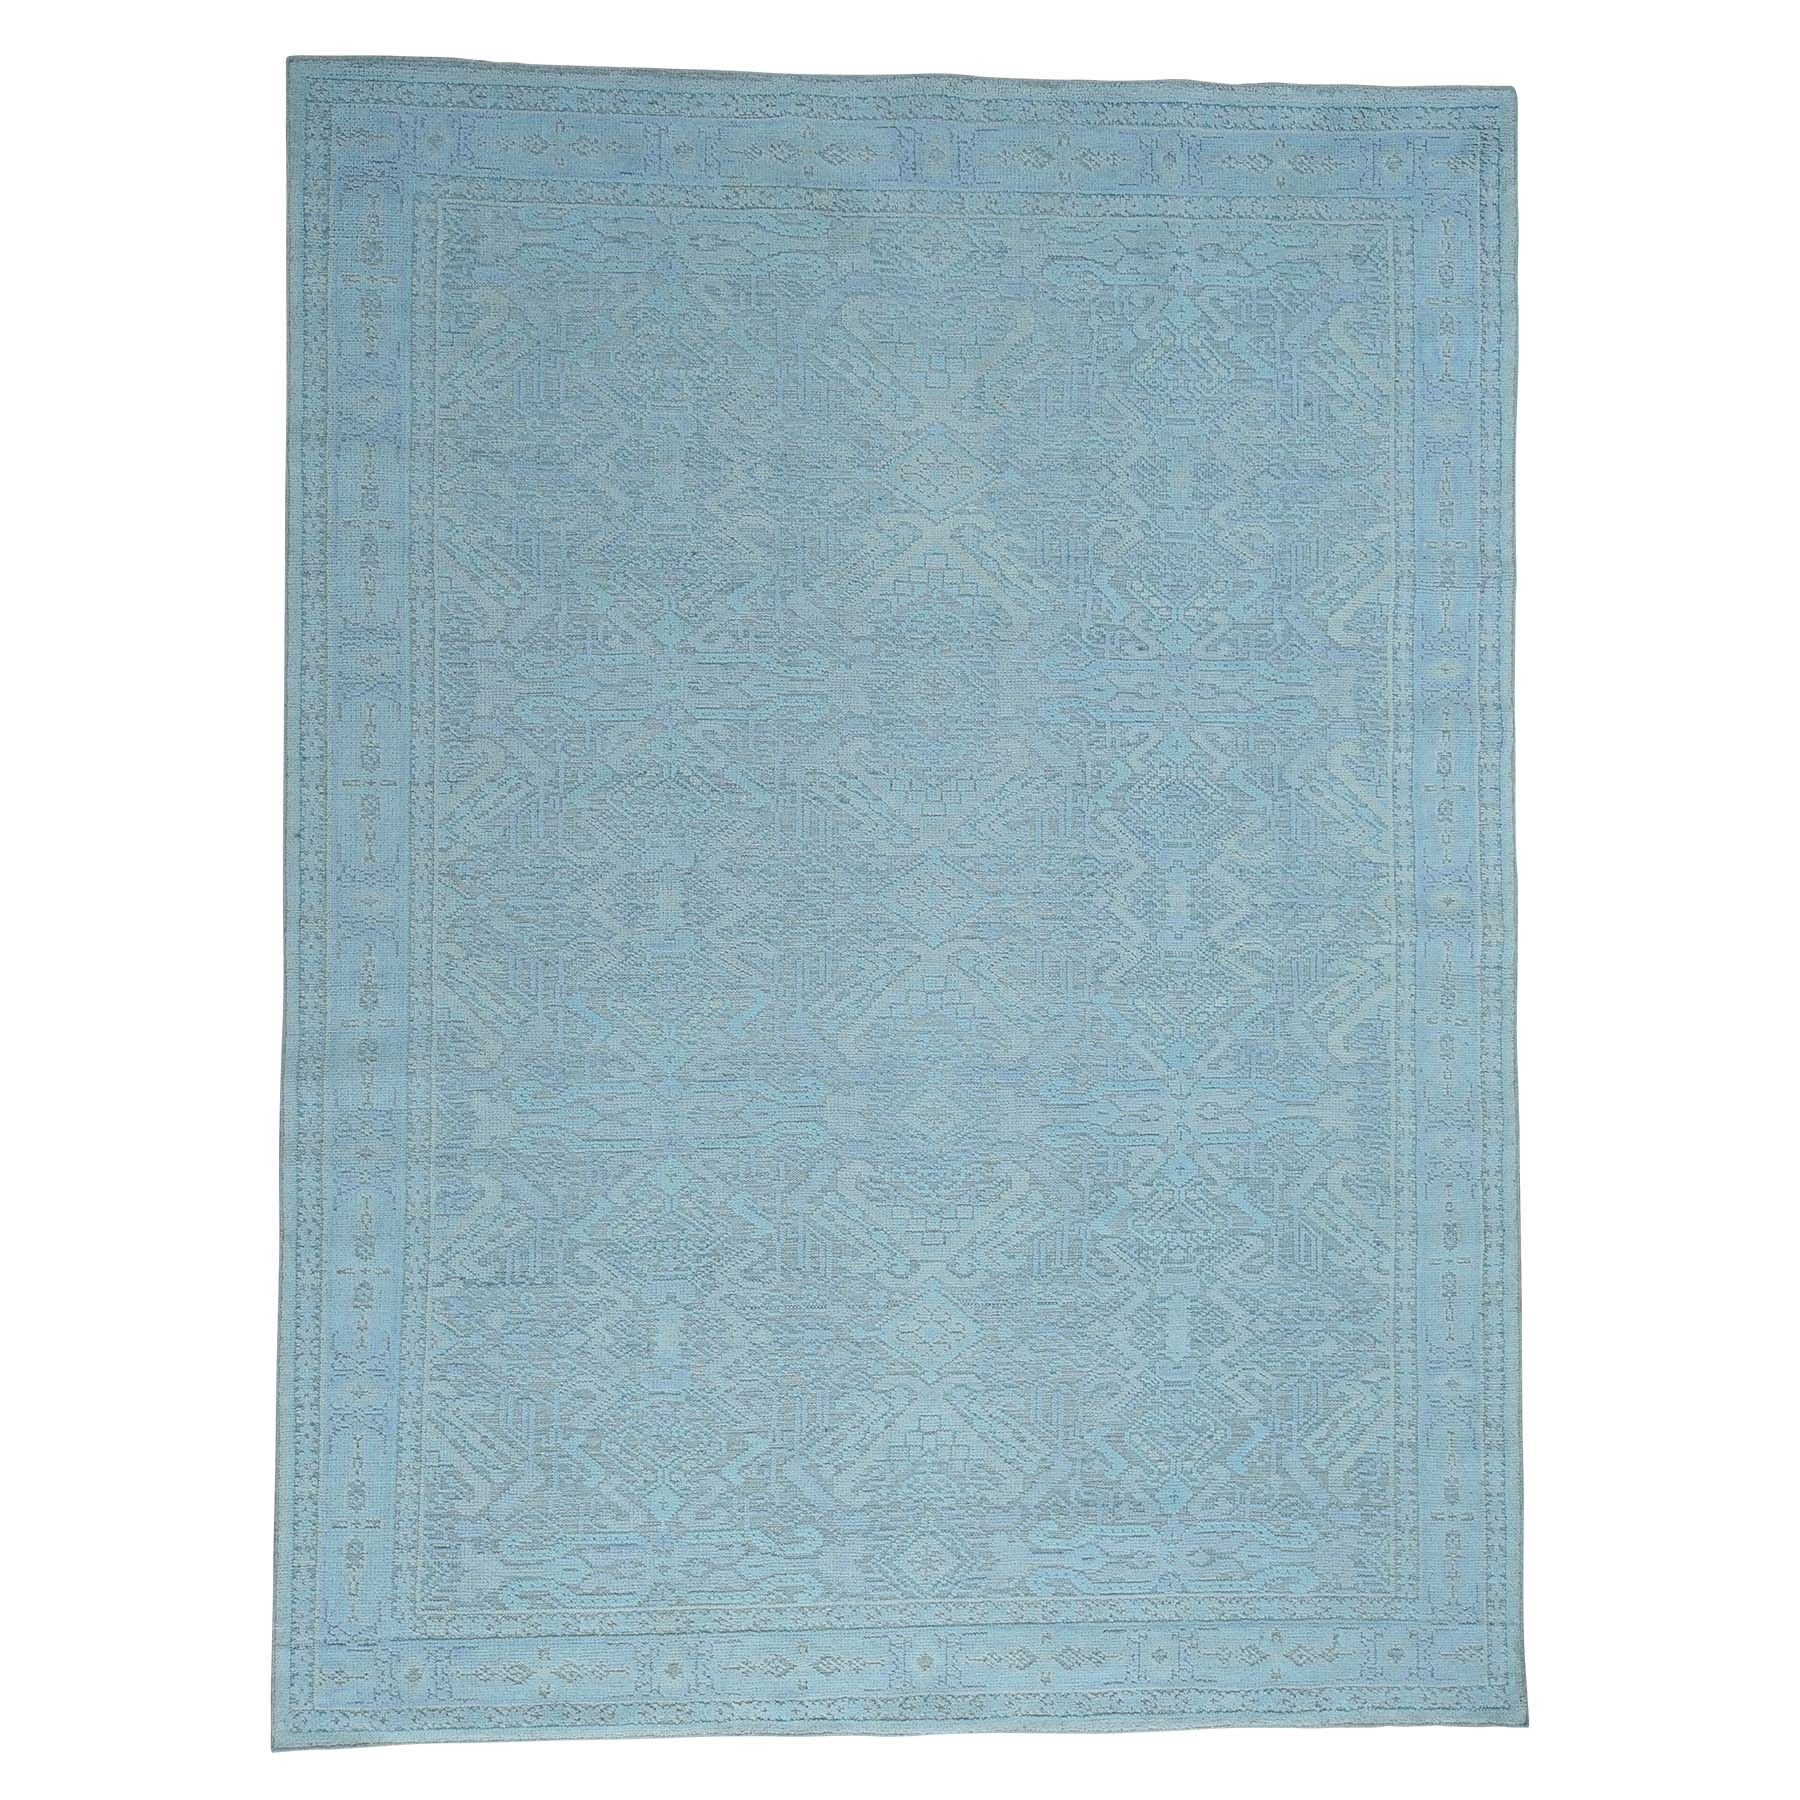 9'X12' Seafoam Green Oushak Design Oxidized Wool Hand-Knotted Rug moac6dc6